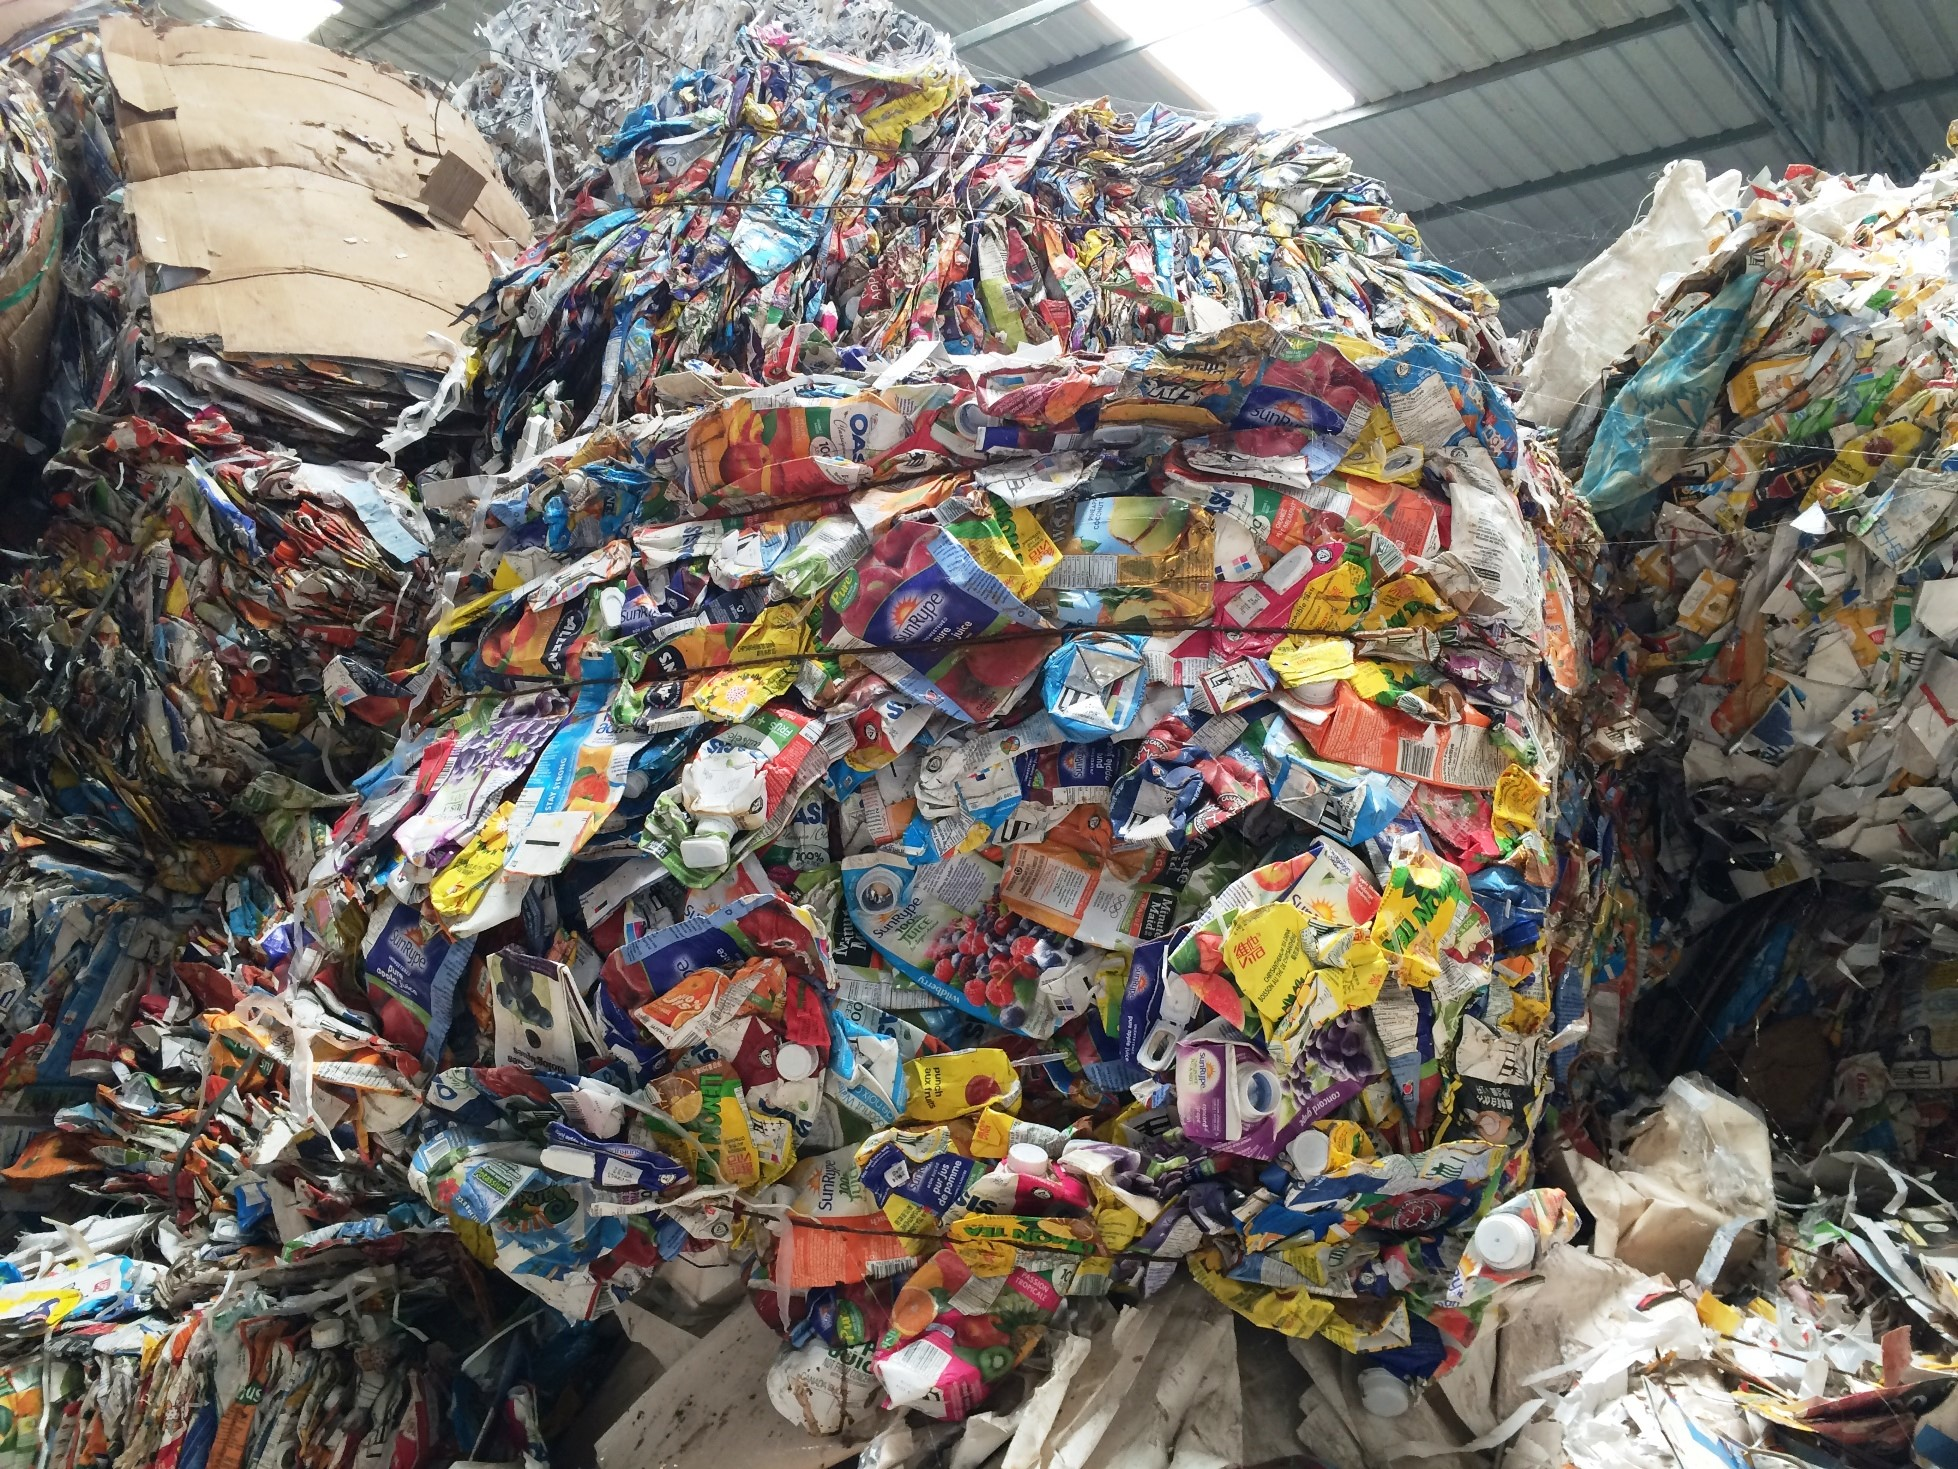 Aluminium from food and beverage cartons can be recovered to make